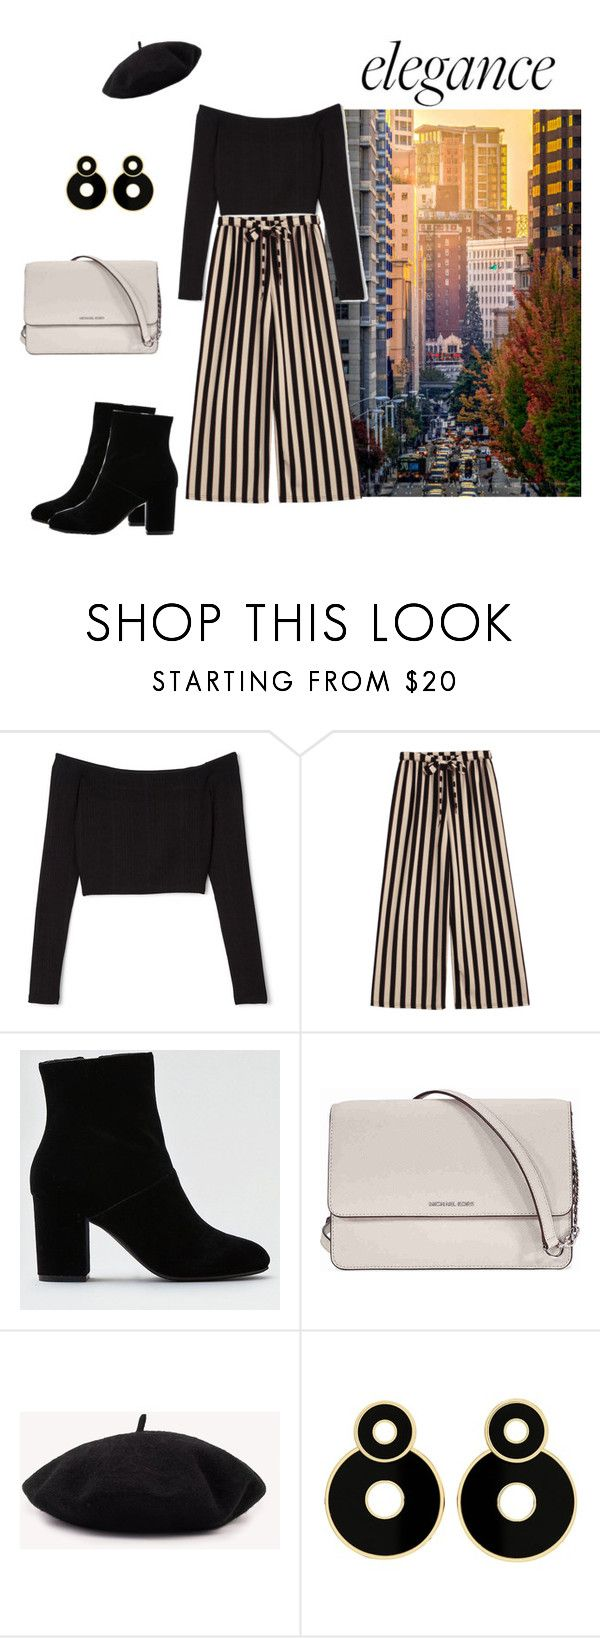 """""""Elegance"""" by mia-arvola on Polyvore featuring American Eagle Outfitters and Michael Kors"""